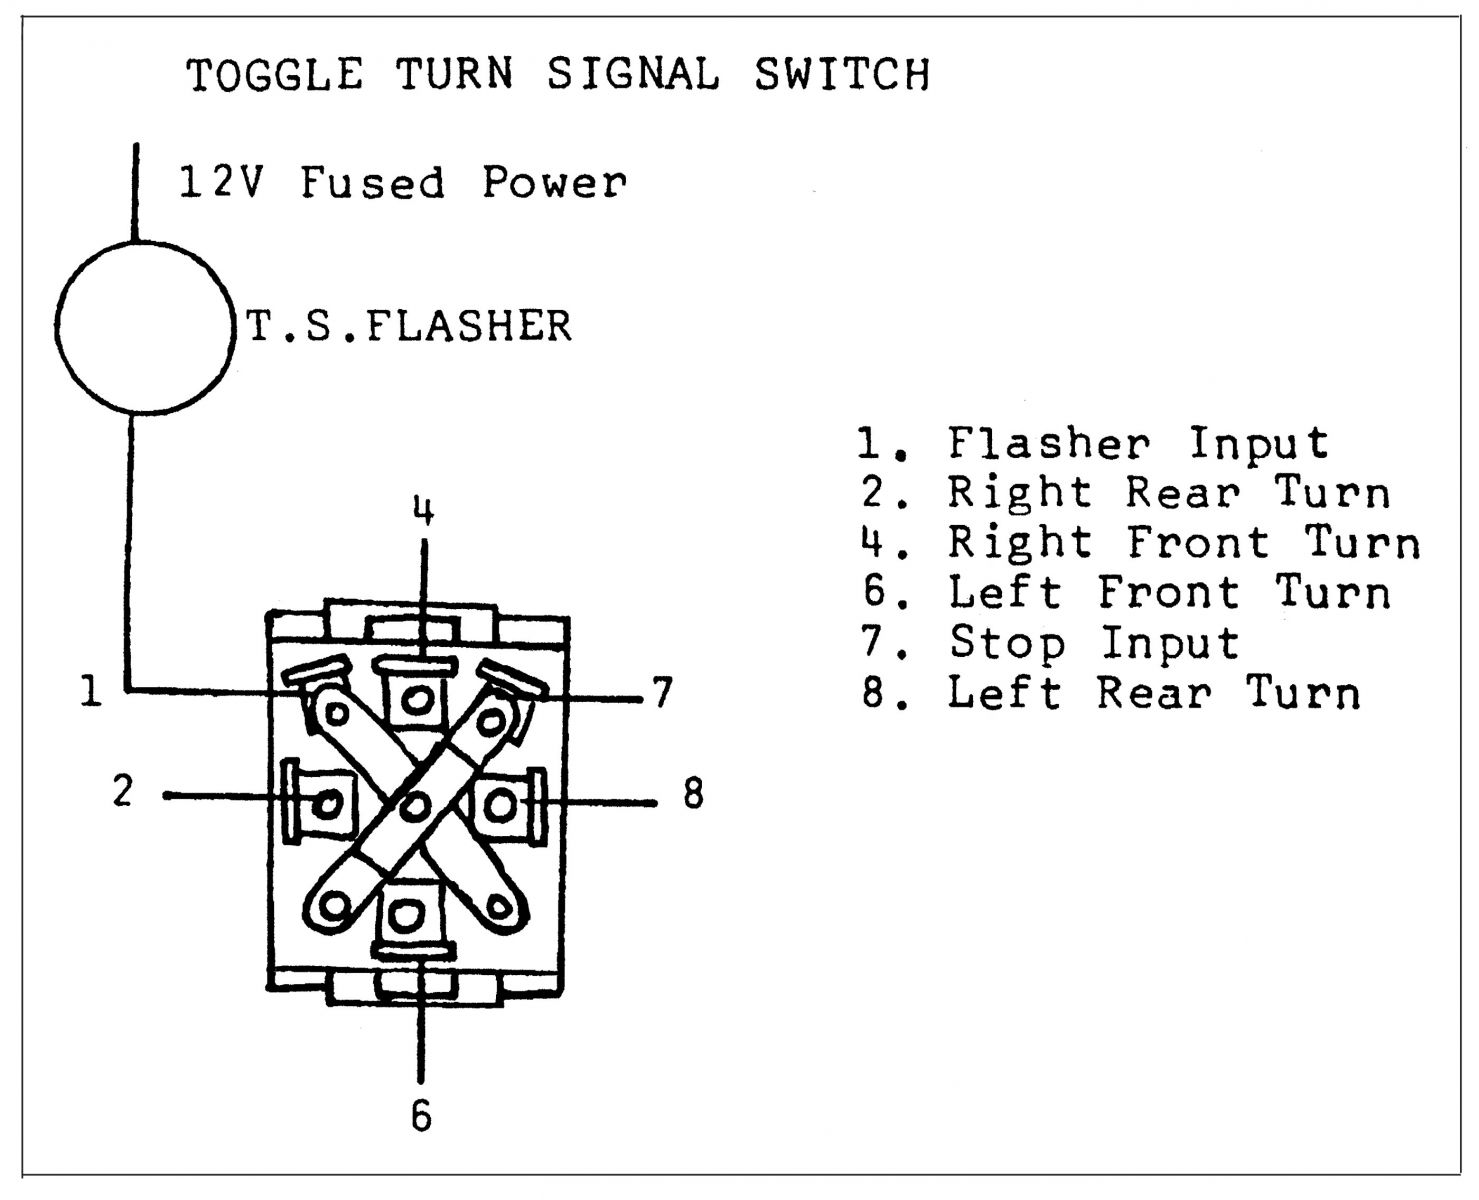 Turn signals 3 turn signals for early hot rods hotrod hotline 7 wire turn signal diagram at gsmx.co